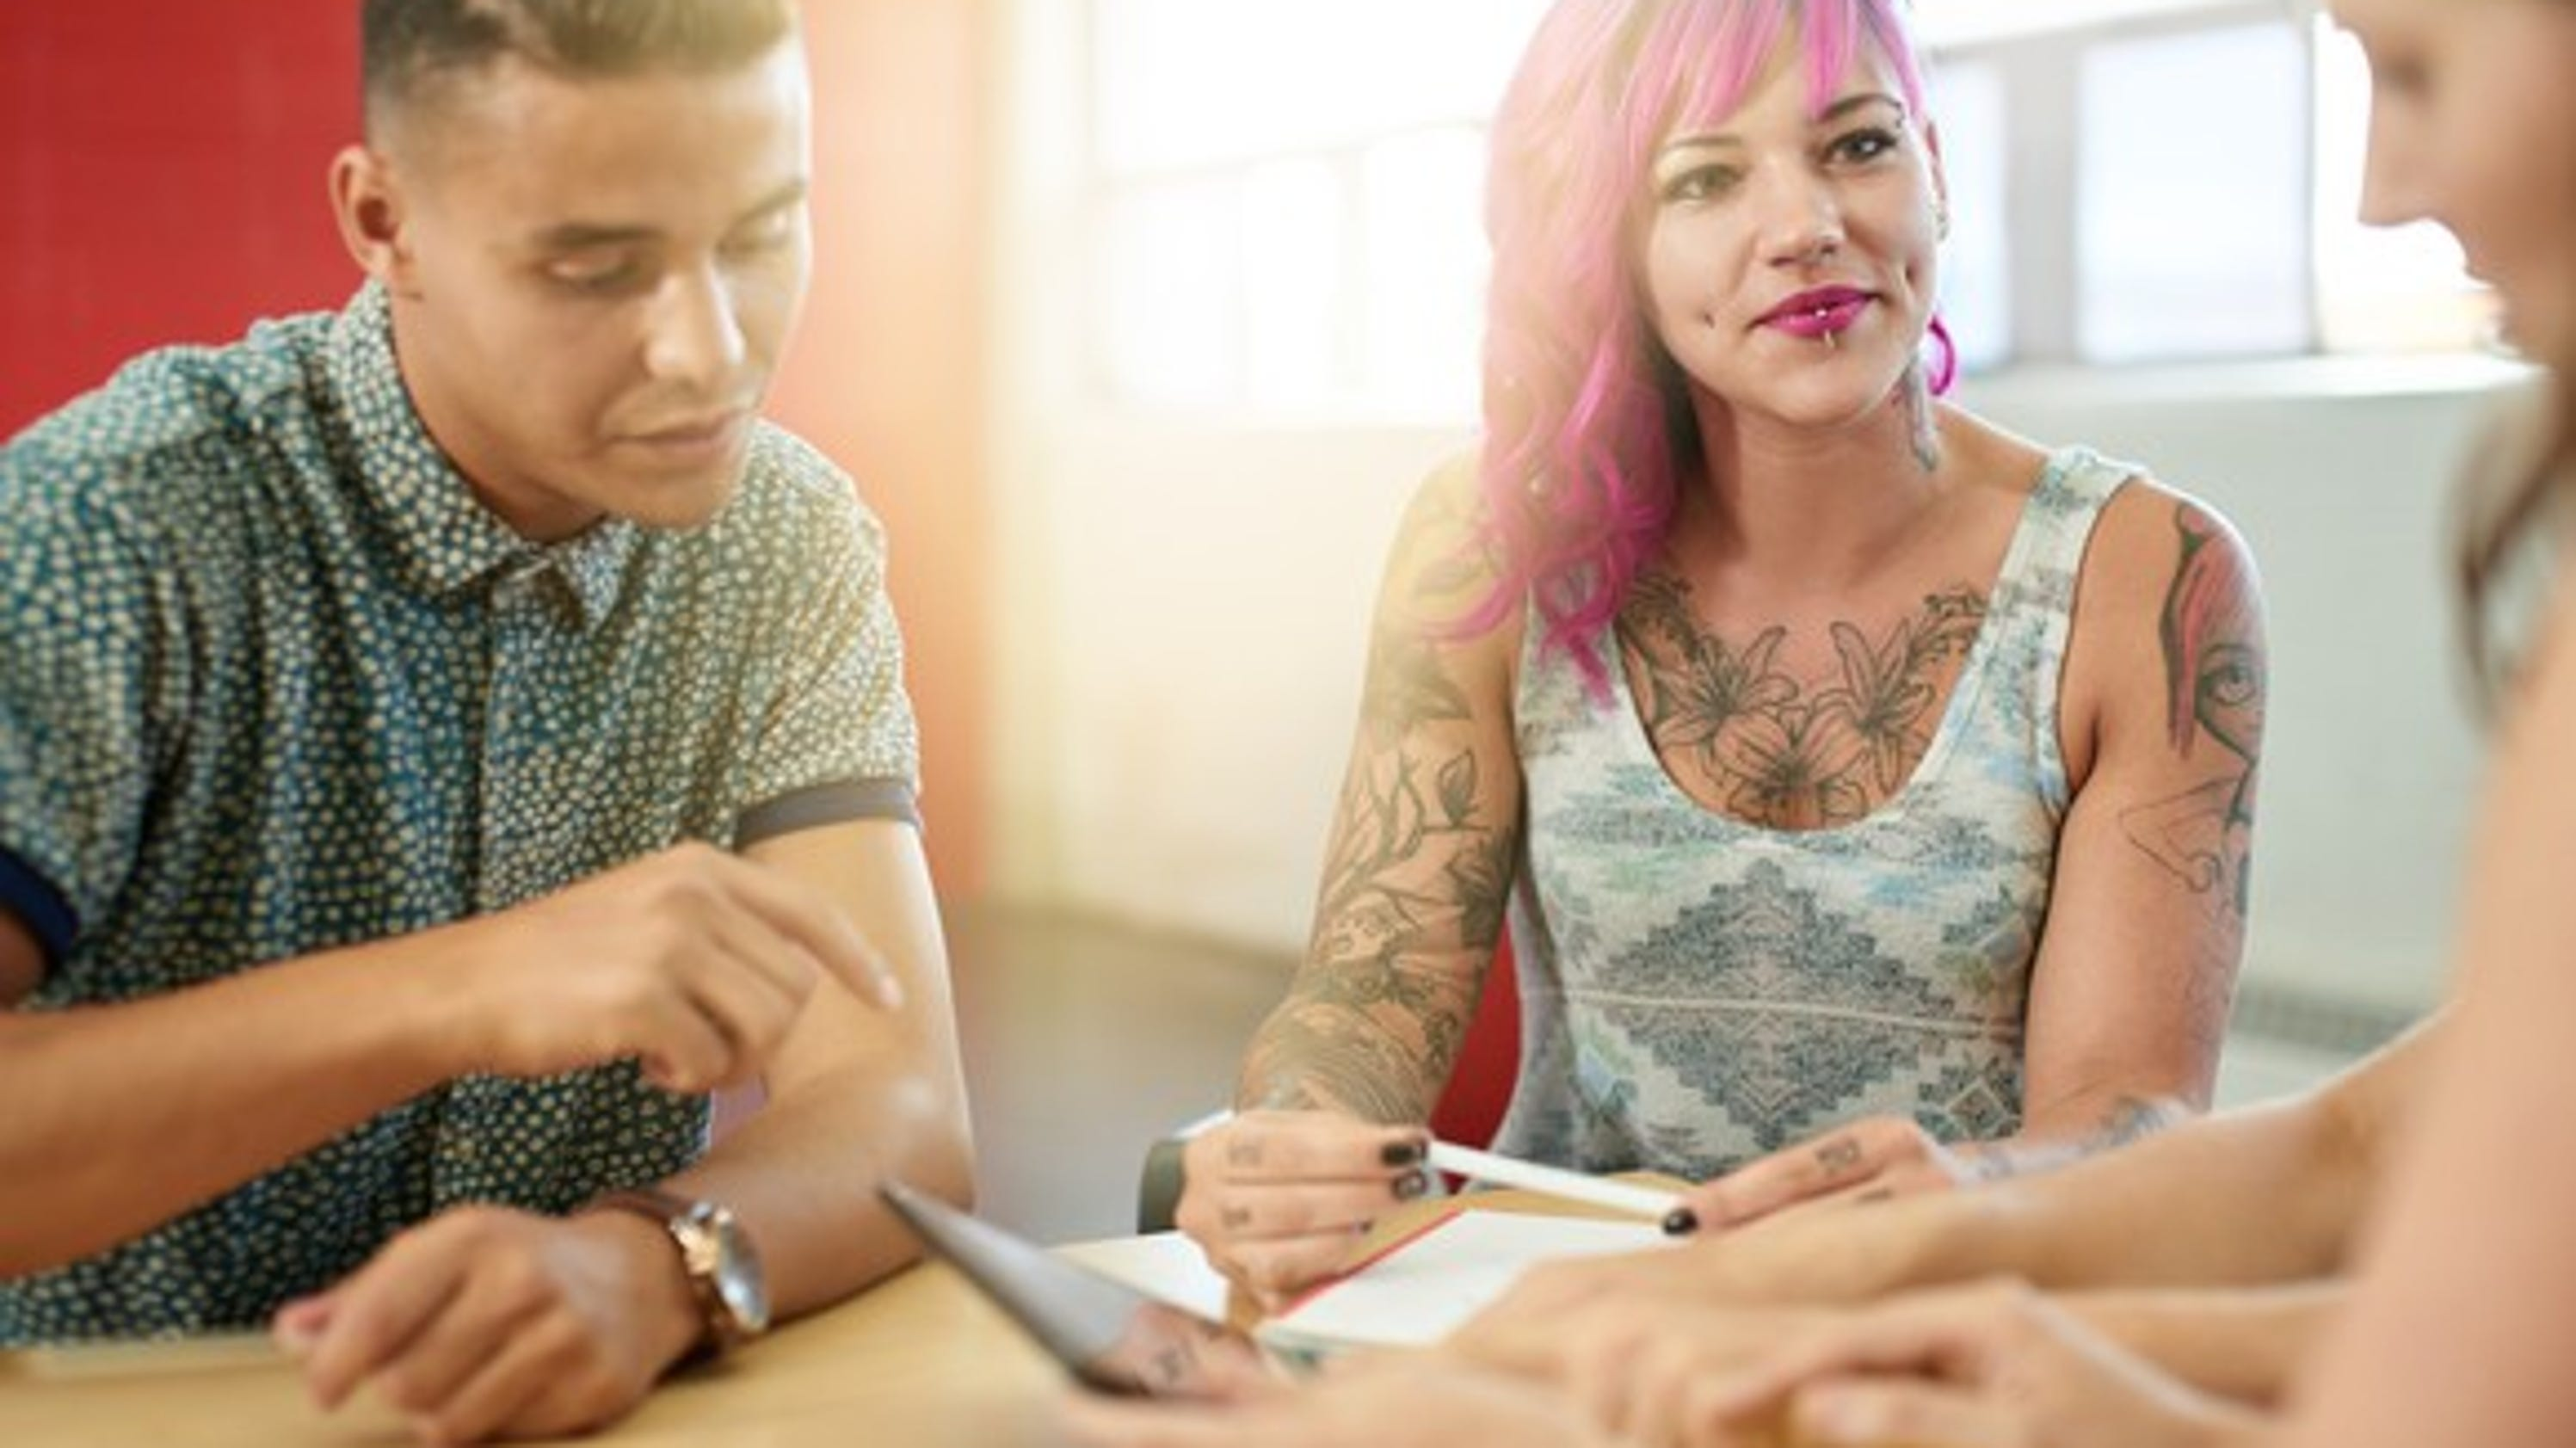 tattoos and piercings in the workplace This study examined attitudes and opinions of young professionals and graduate students aged 21-35 towards tattoos and piercings tattoos in the workplace are.